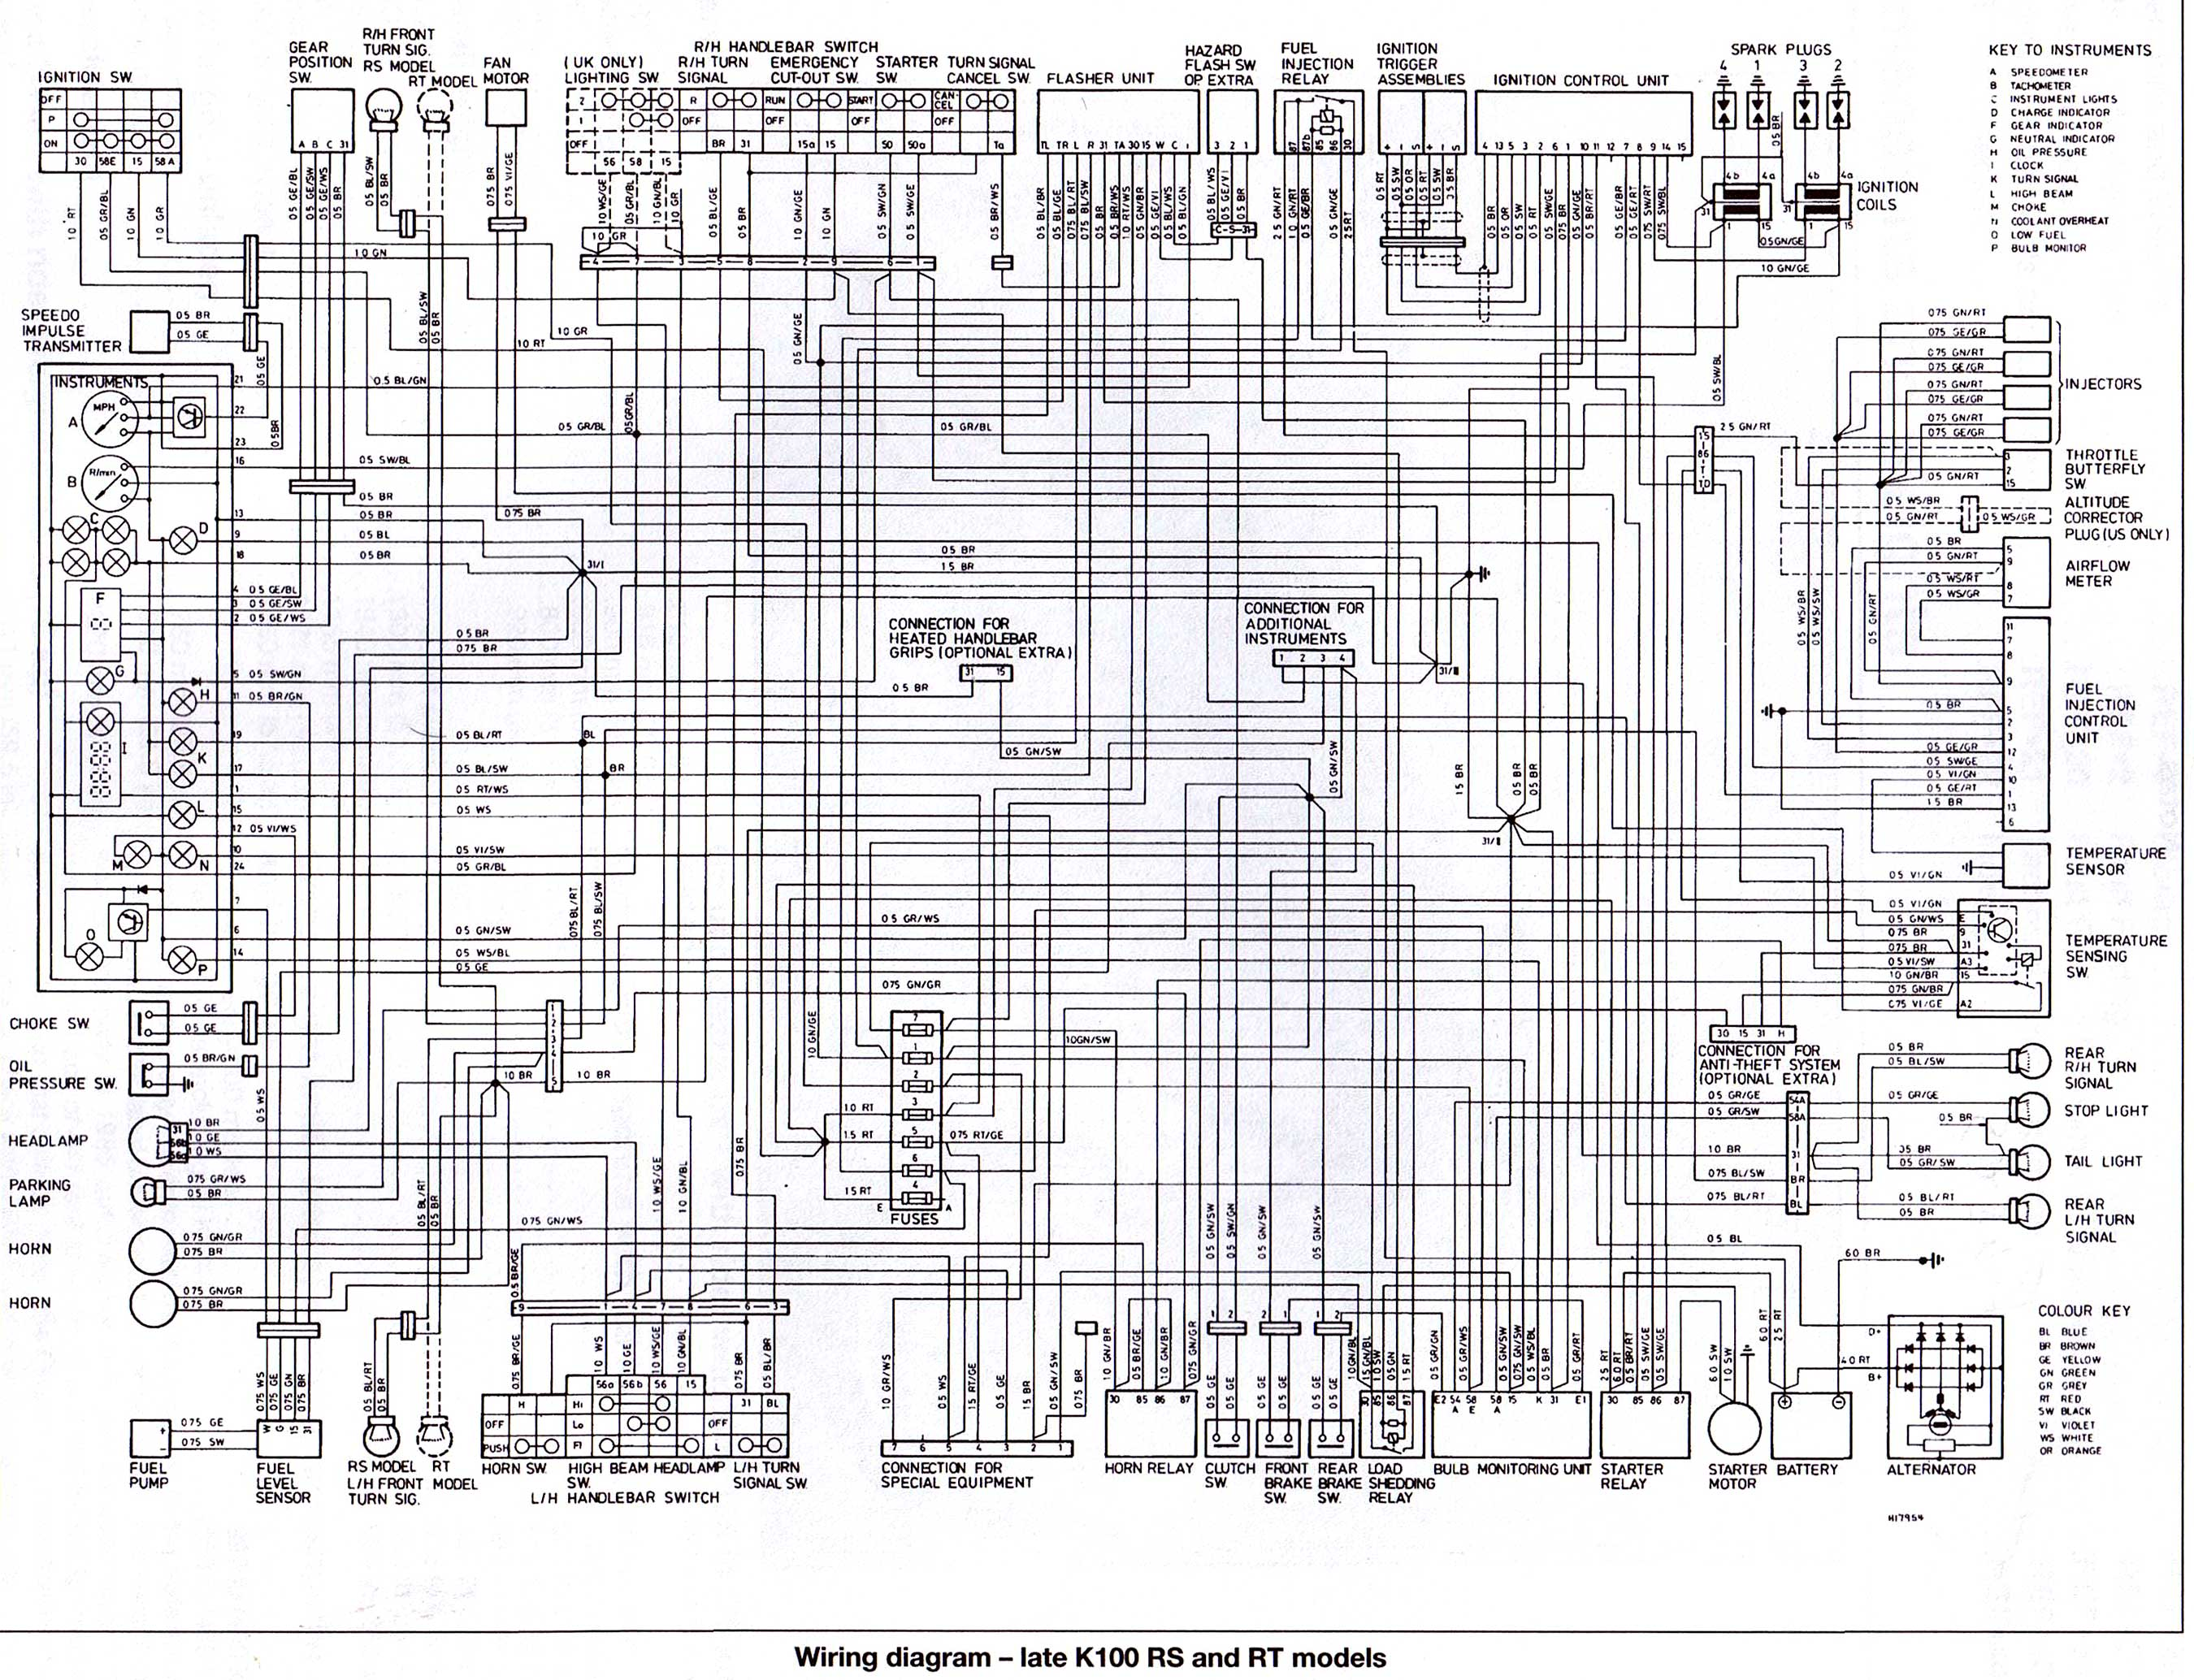 2003 bmw x5 stereo wiring diagram for 7 pin trailer connection schemi veicolo